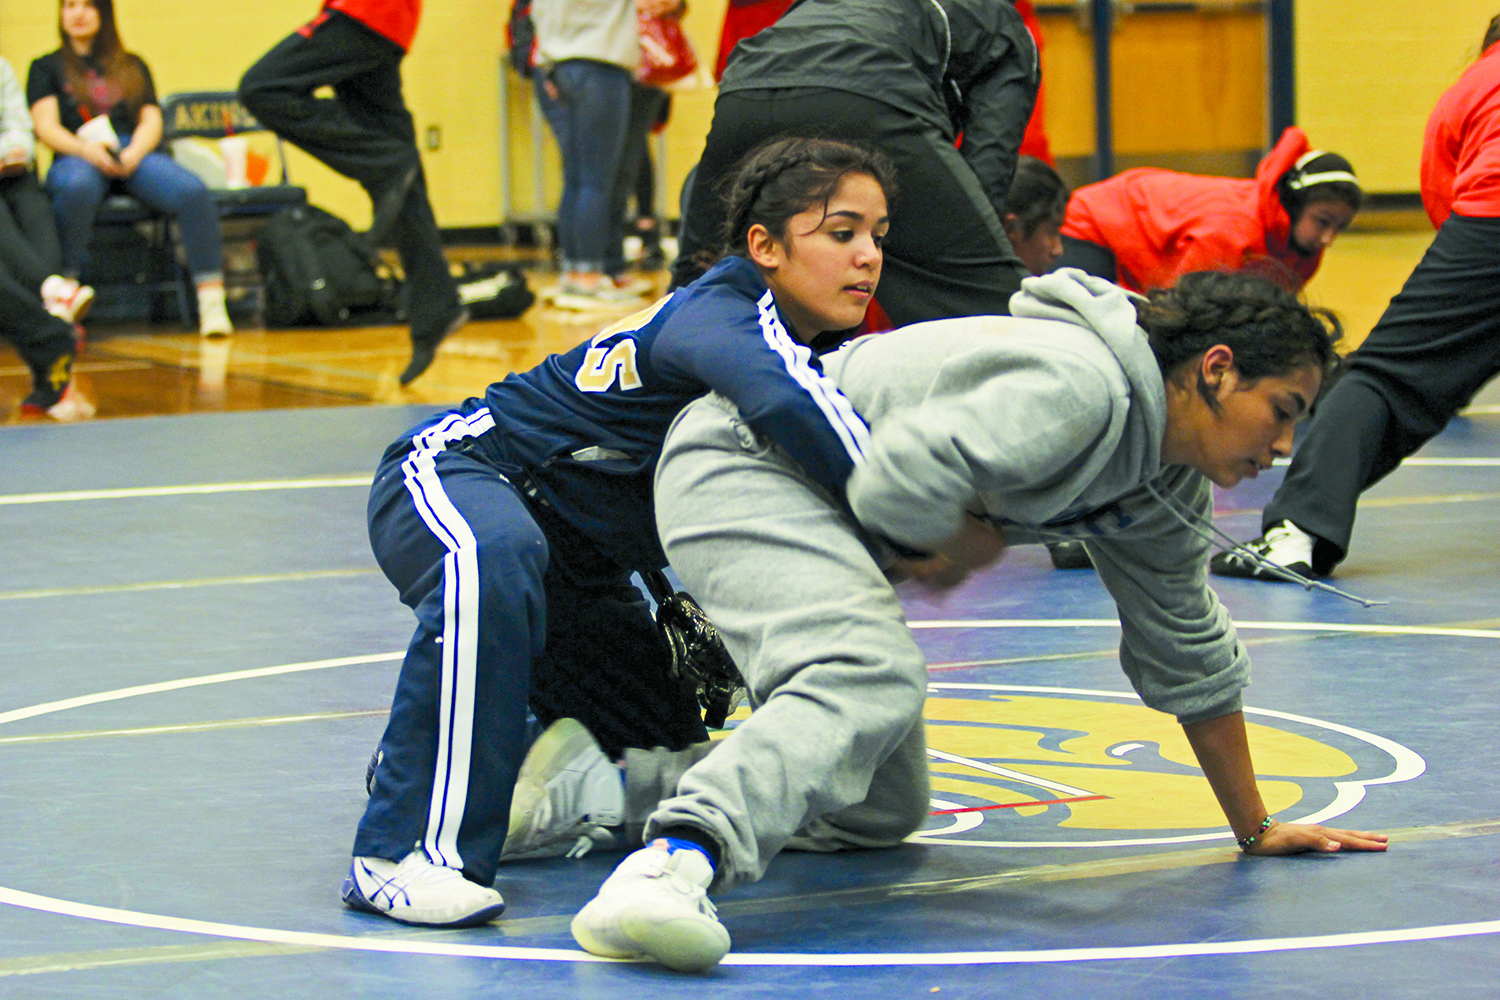 Akins wrestlers warm up before a match against New Braunfels Canyon High School. The wrestlers spent many hours a week in preparation before their season started in November.